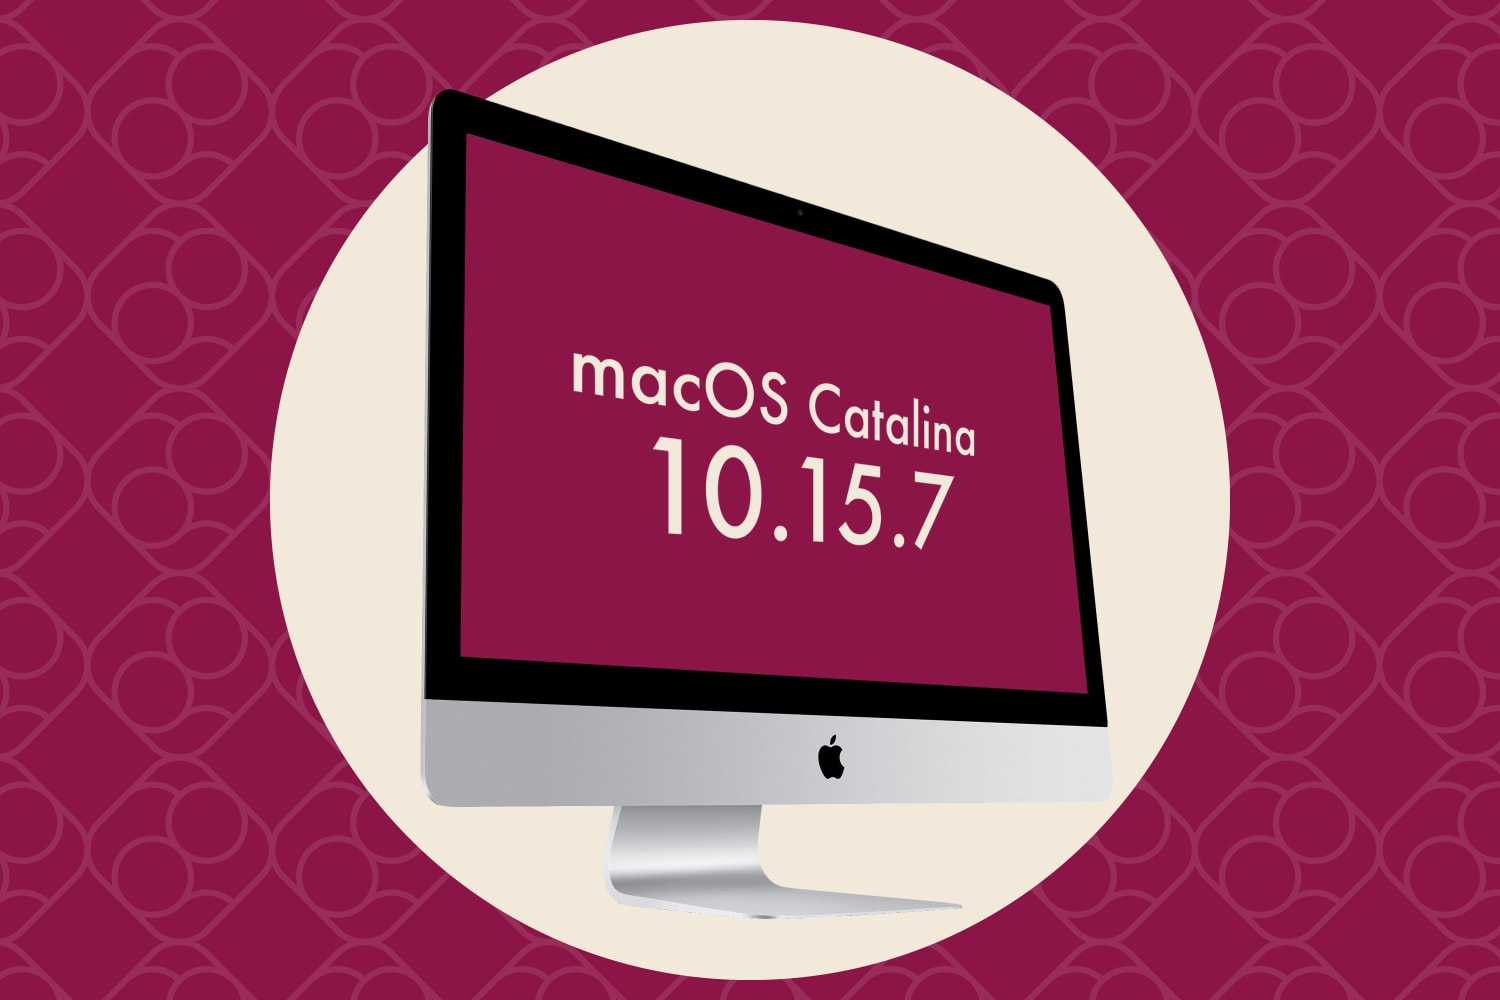 macos-catalina-10-15-7-update-fixes-imac-graphics-icloud-syncing-and-wi-fi-issues-20200925-1